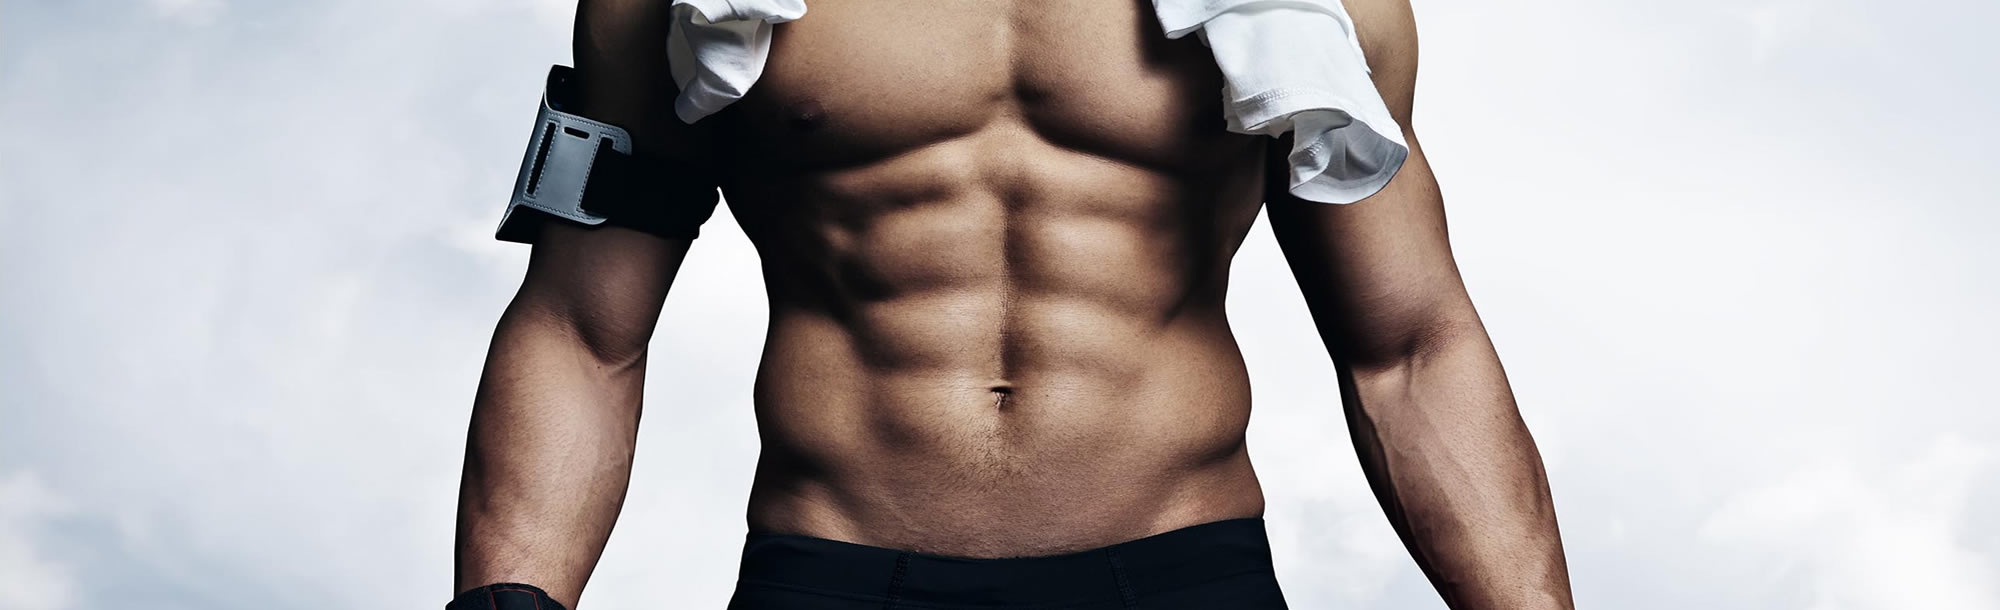 Male body waxing gold coast